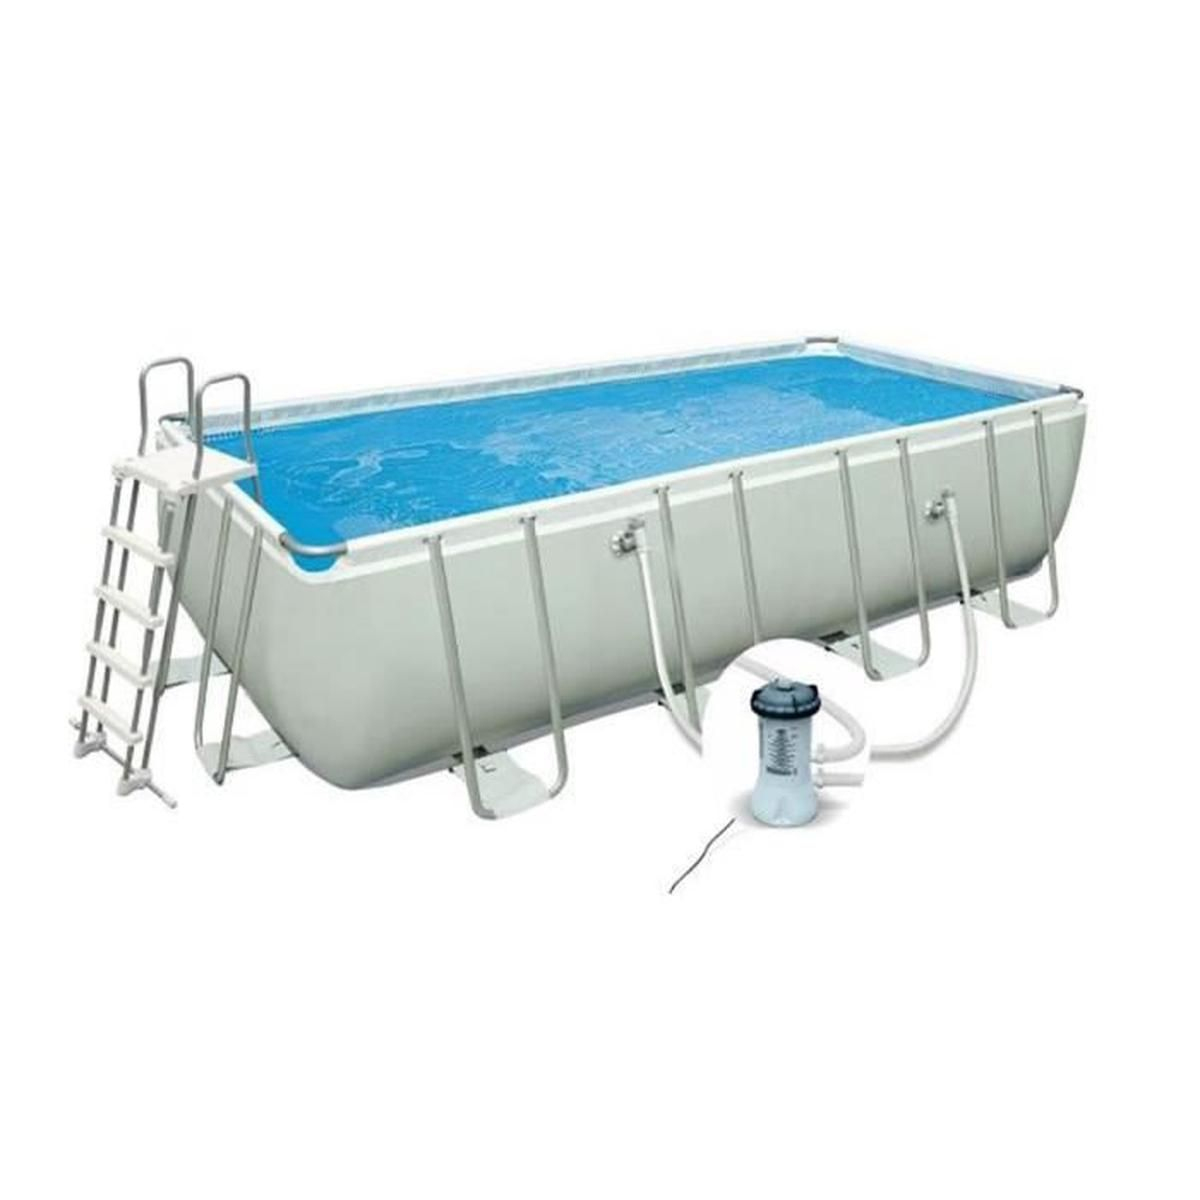 Piscine Tubulaire Rectangulaire Ultra Frame Dim : L400 X ... intérieur Piscine Tubulaire Rectangulaire Bestway